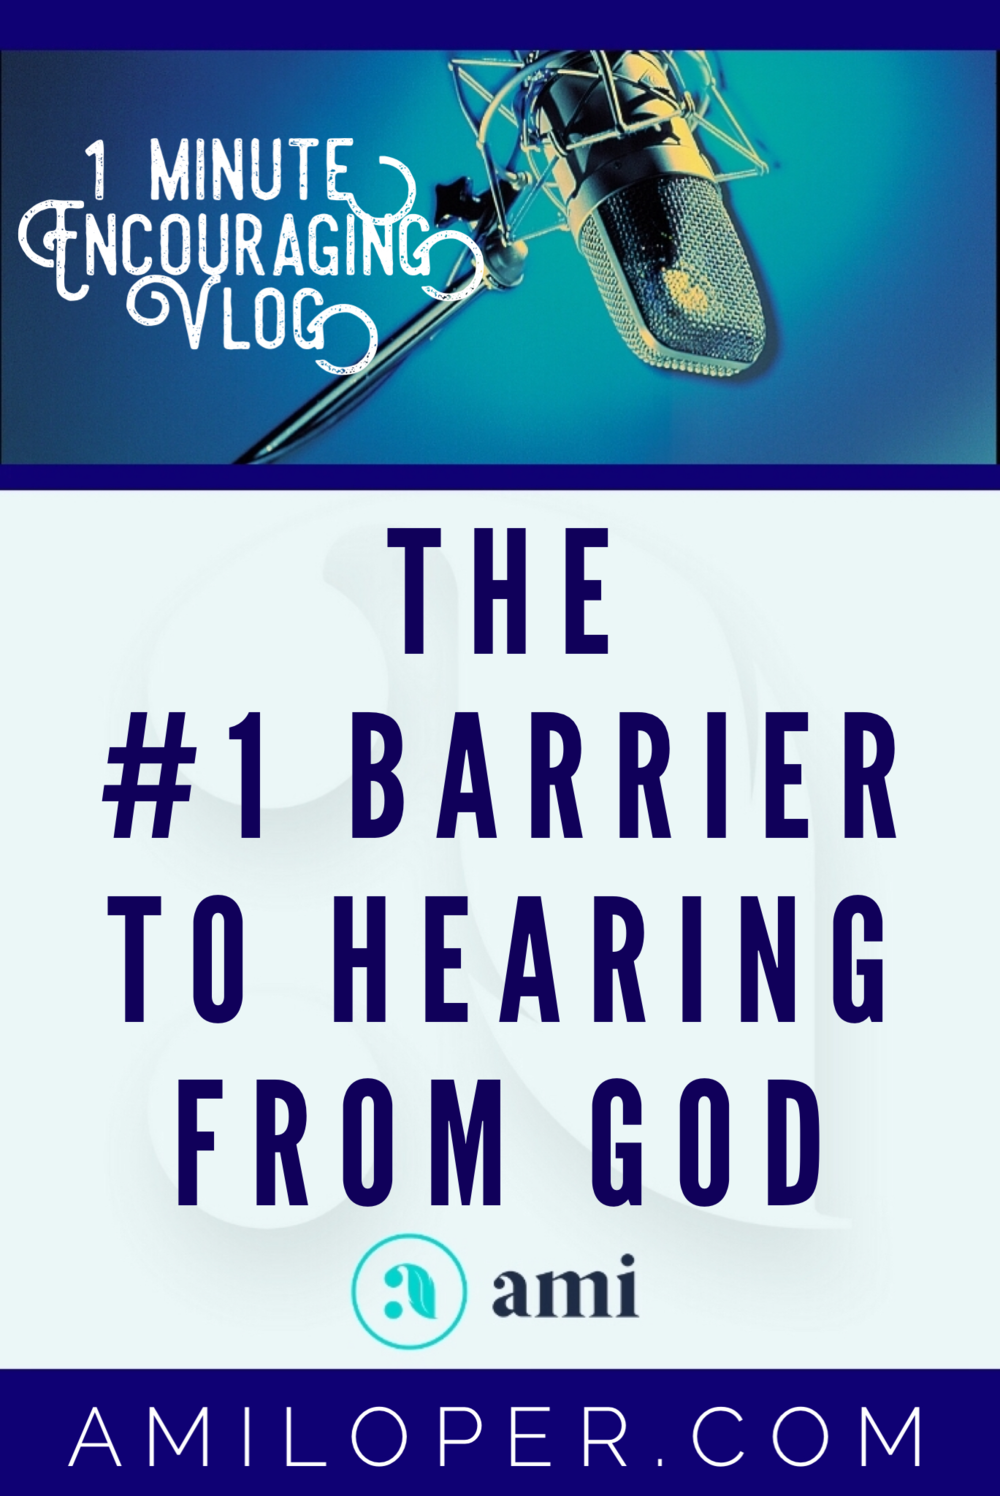 What could be inhibiting your ability to hear from God? Last week we learned the #1 requirement to hear from God and today we discuss the #1 barrier. #Prayer #TrustGod #Vlog